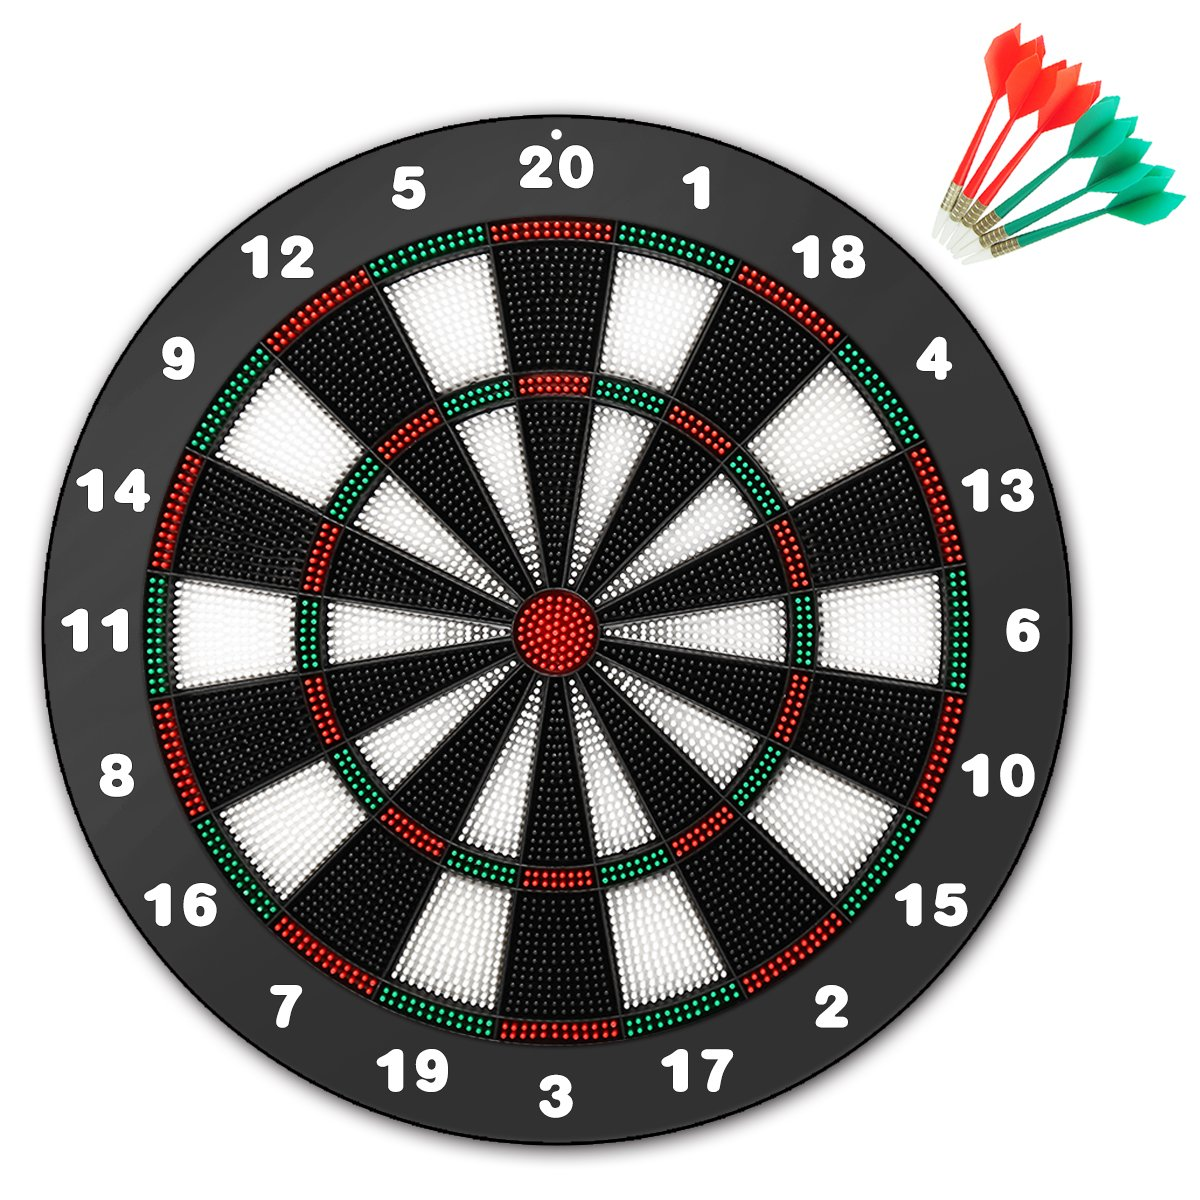 CAMTOA Safety Dart and Dart Board Set, 16 Inch Rubber Dart Board -Professional Home Dartboard Kit with 6 Soft Tip Darts, Perfect for Adults and Children, Leisure Sport for Office/Home